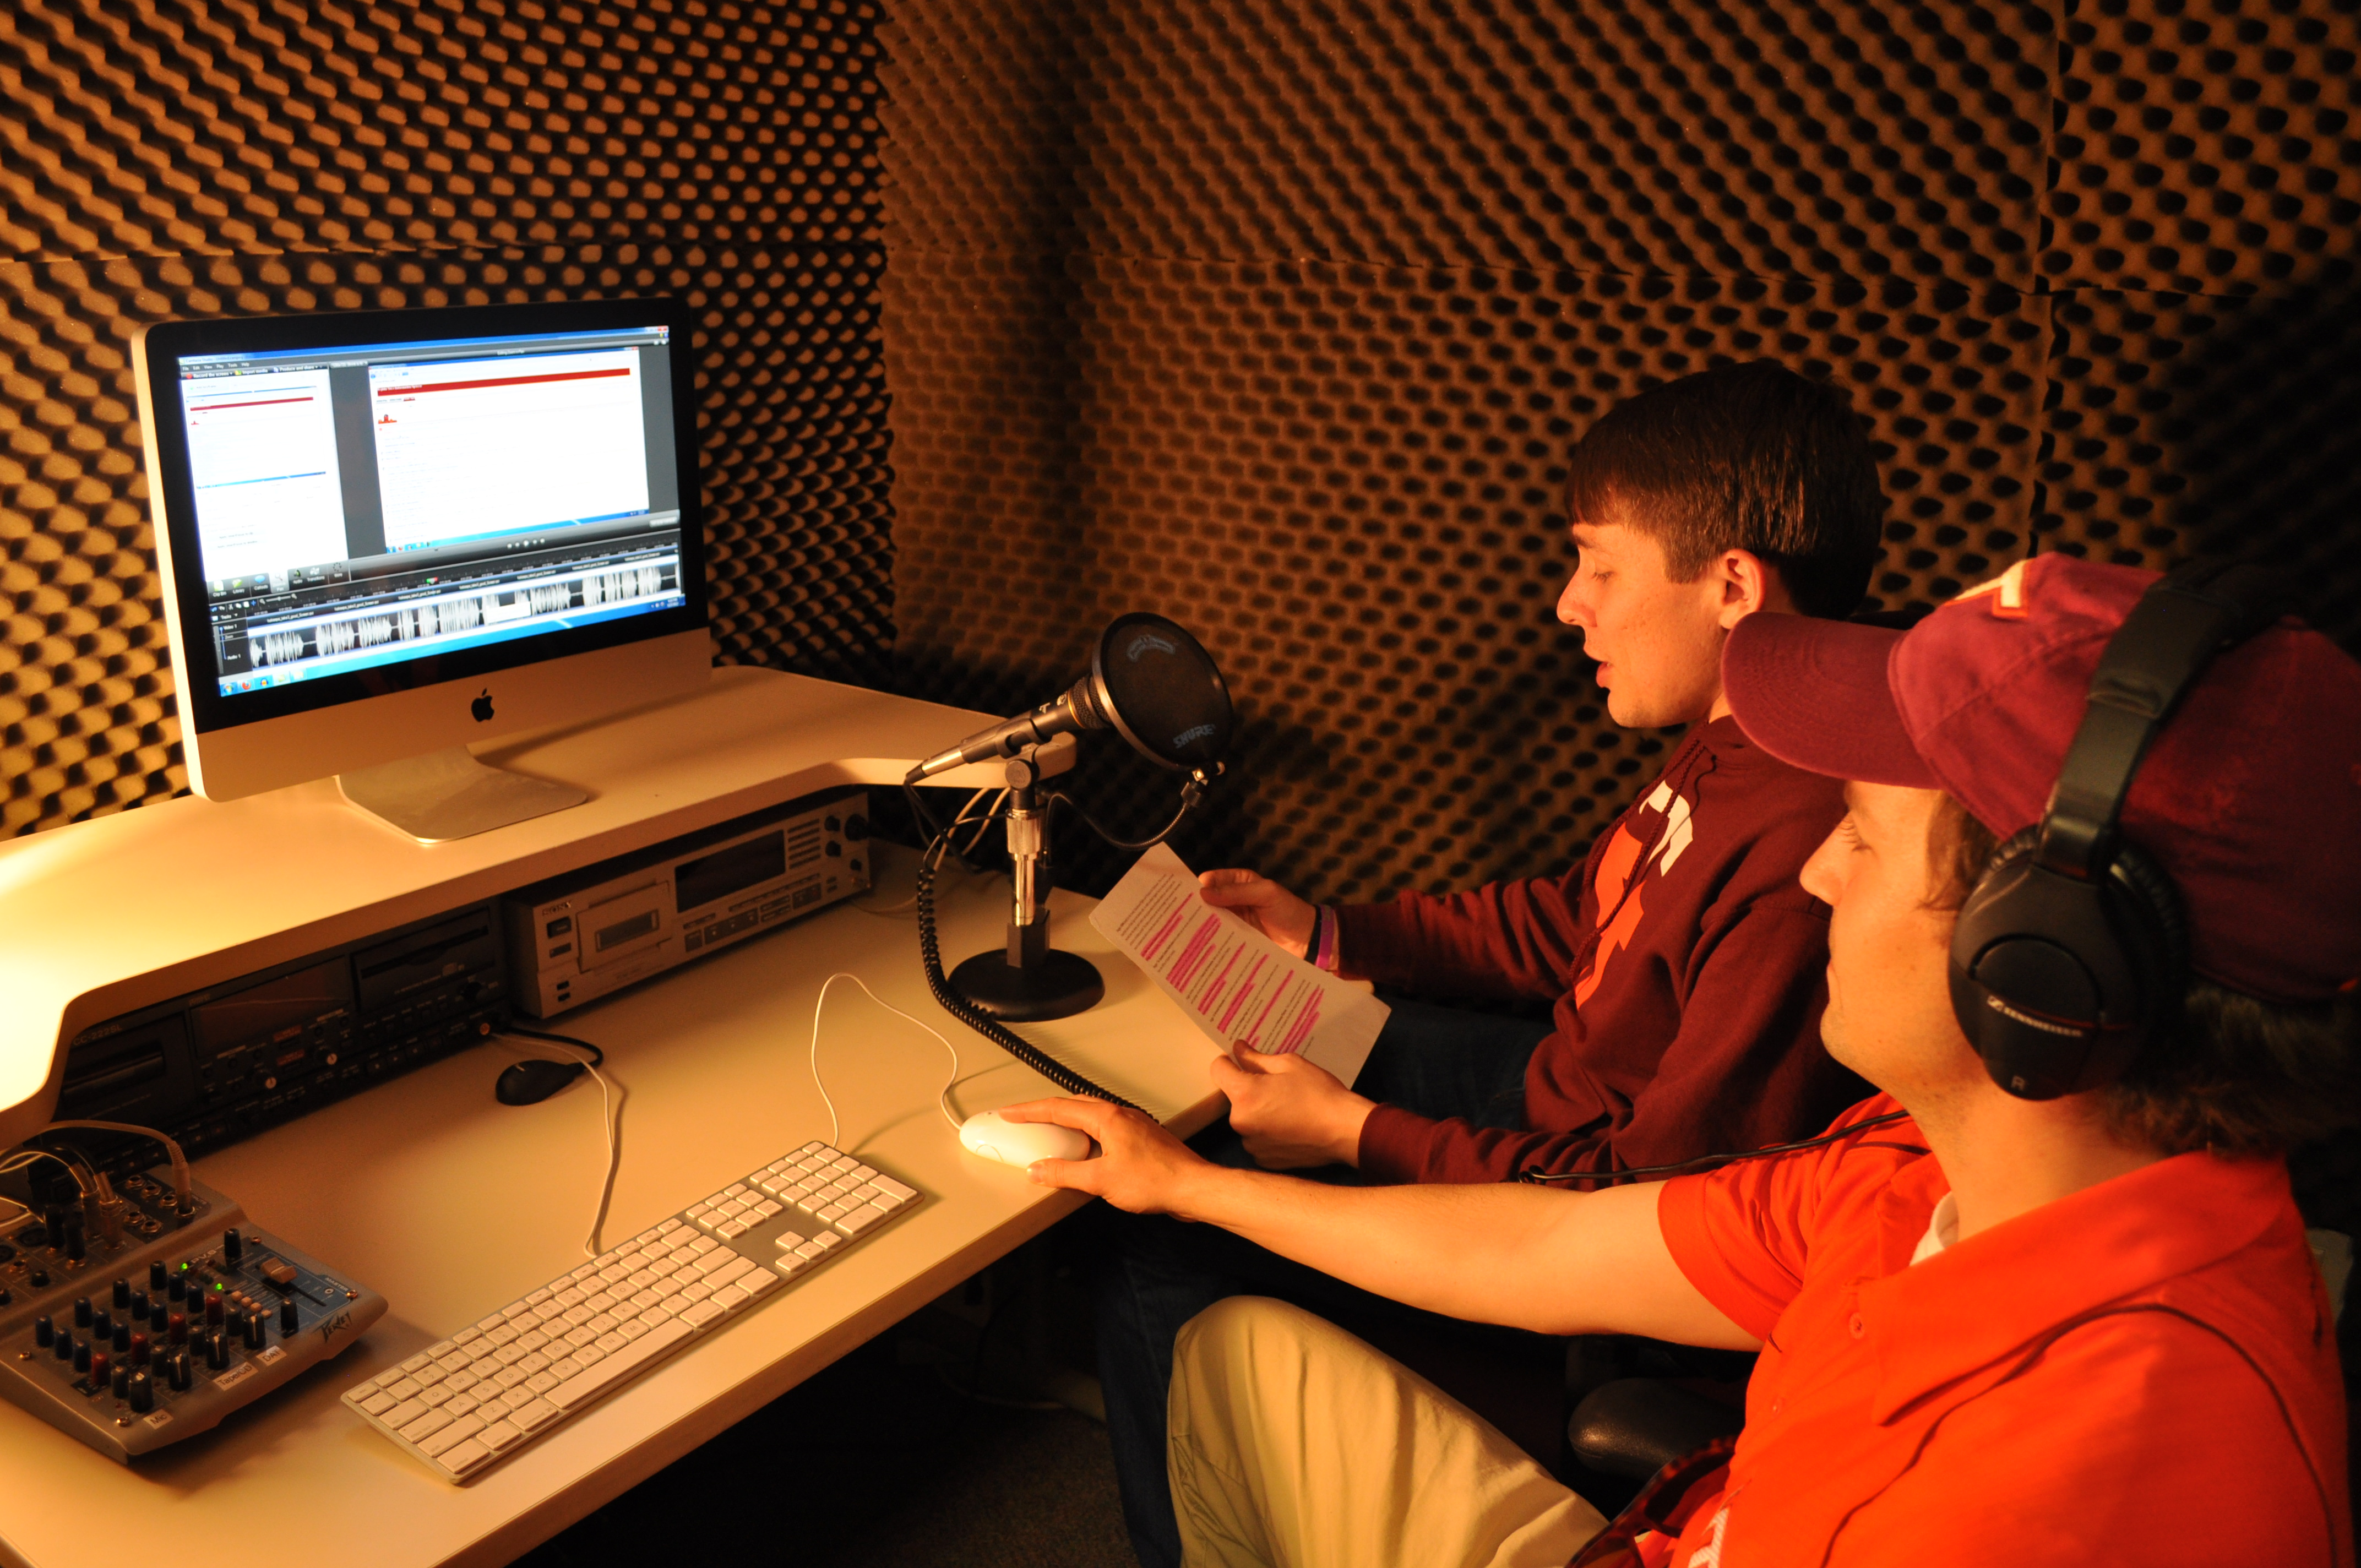 Noah Schoenholtz, near, and Josh Thompson, narrate the Hokie SPA tutorial video.